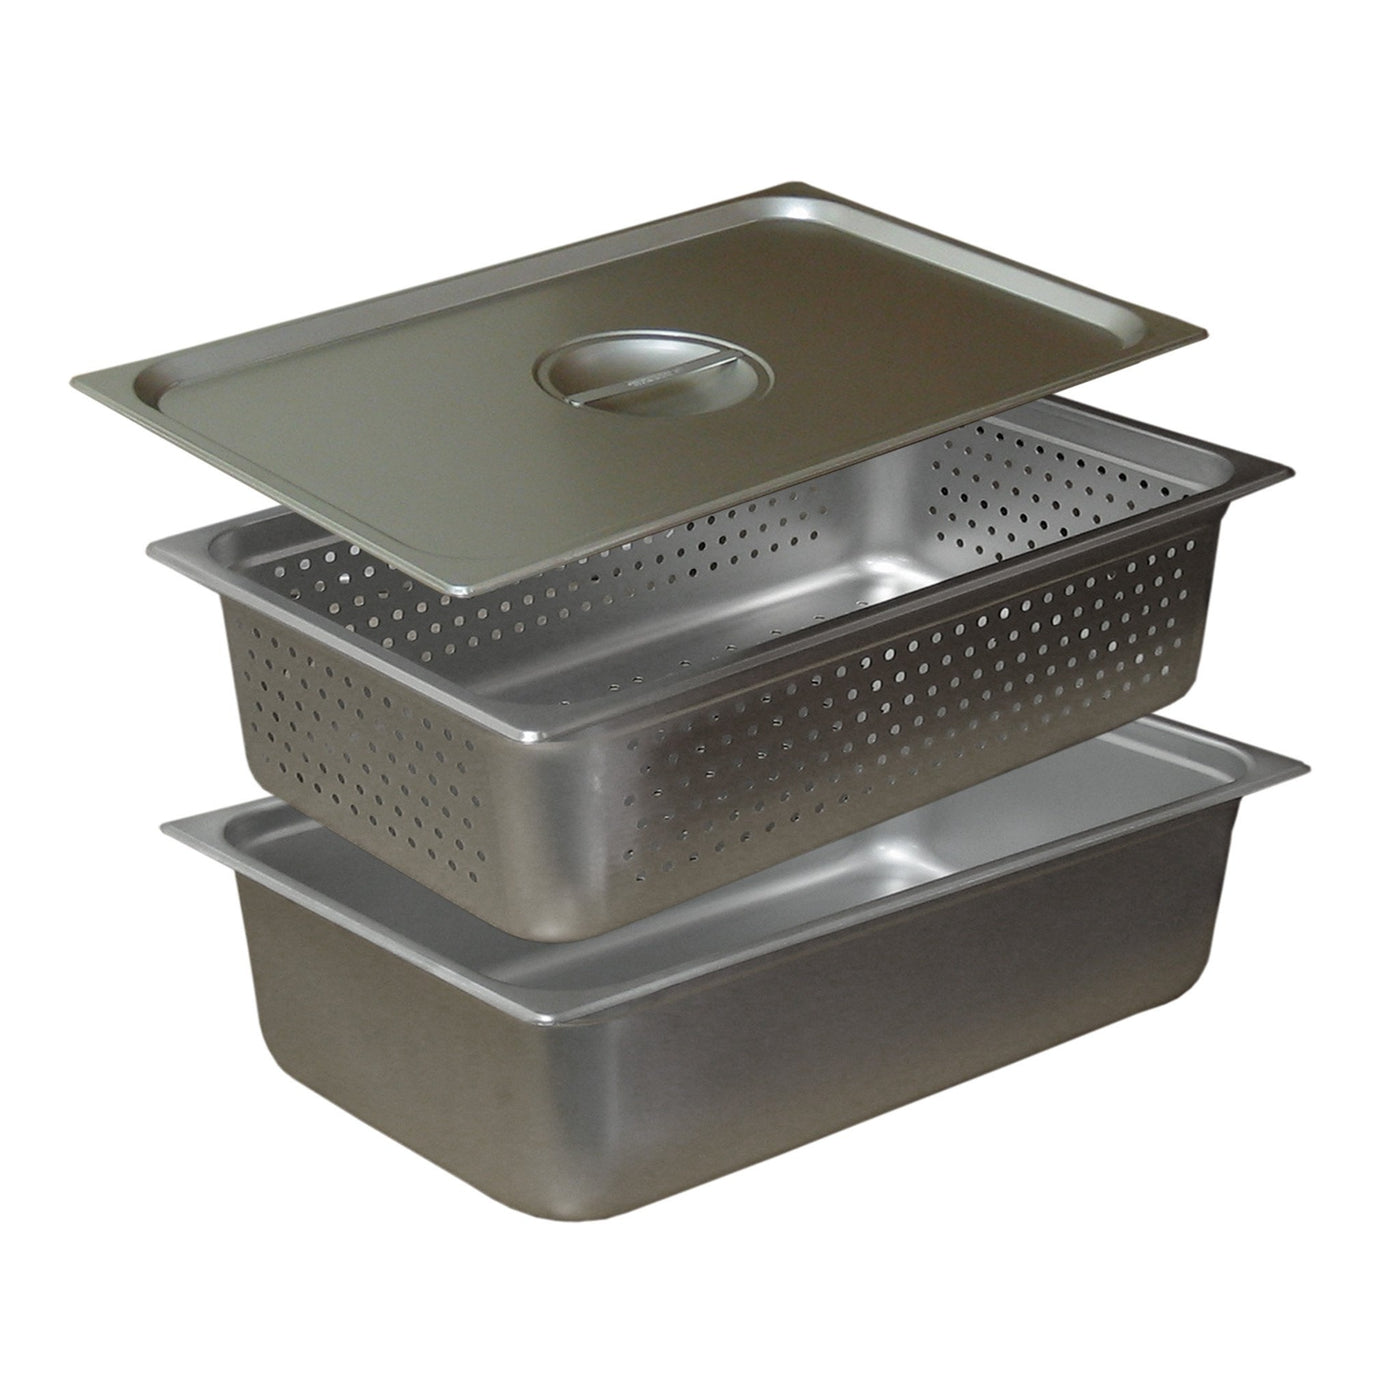 Sterilization Tray Sets-Laboratory Accessory-Mortech Manufacturing Company Inc. Quality Stainless Steel Autopsy, Morgue, Funeral Home, Necropsy, Veterinary / Anatomy, Dissection Equipment and Accessories